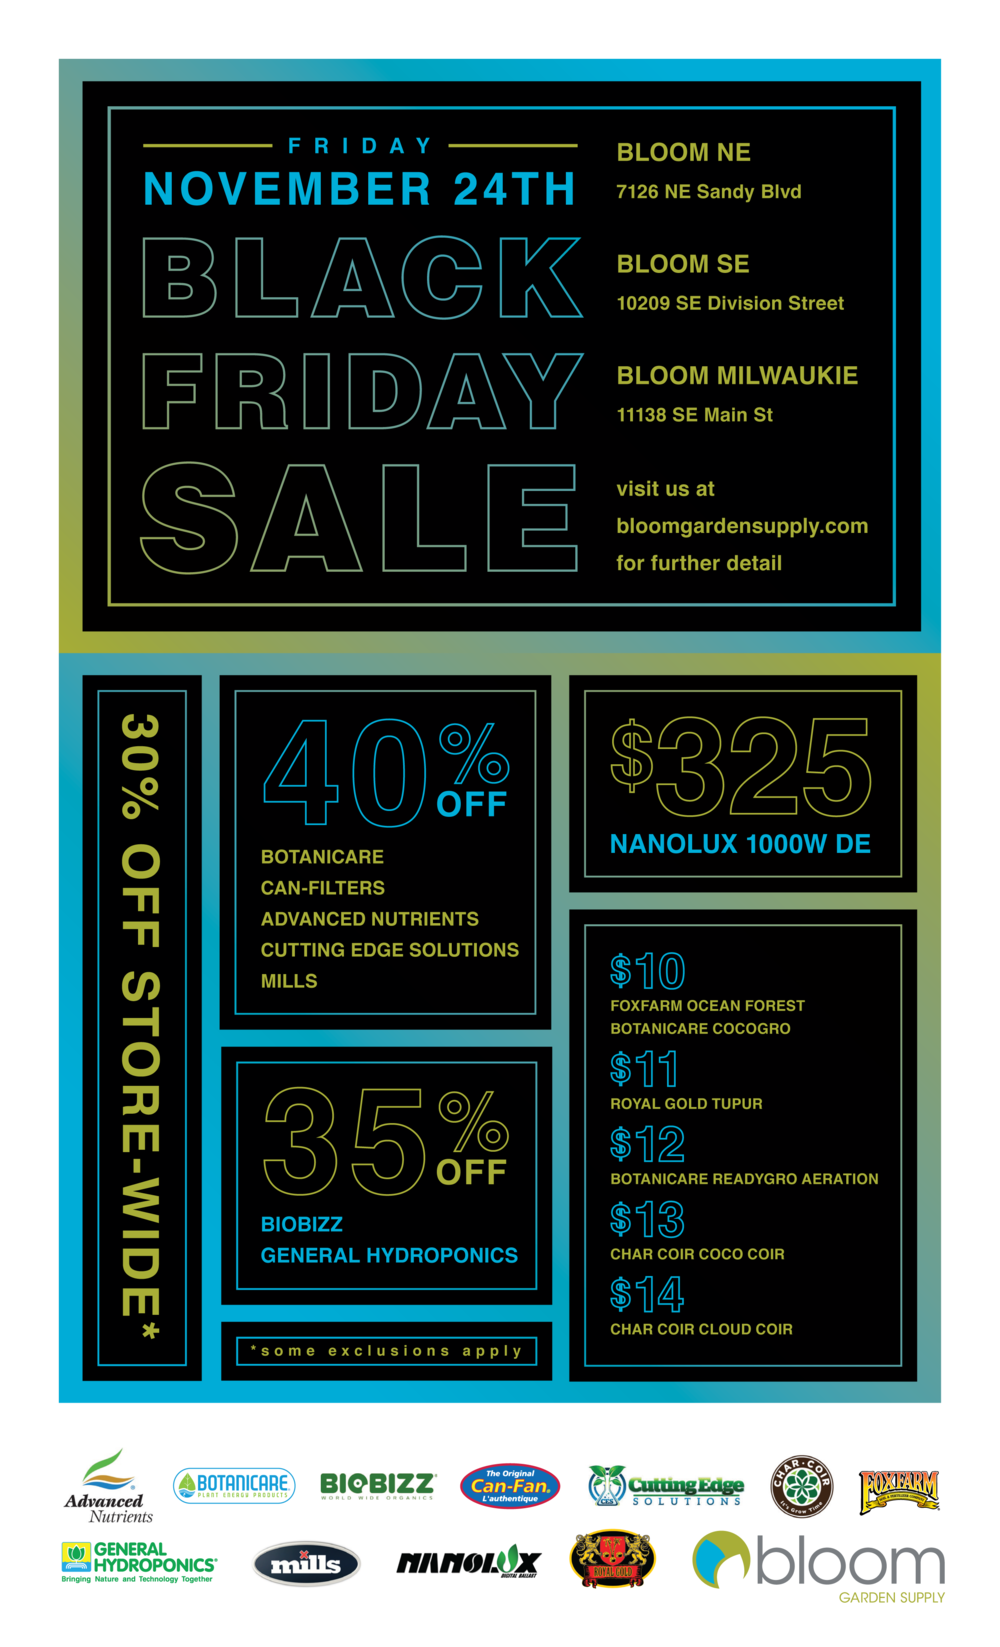 BGS_Black_Friday_Sale_Poster_2017_P1c-1.png